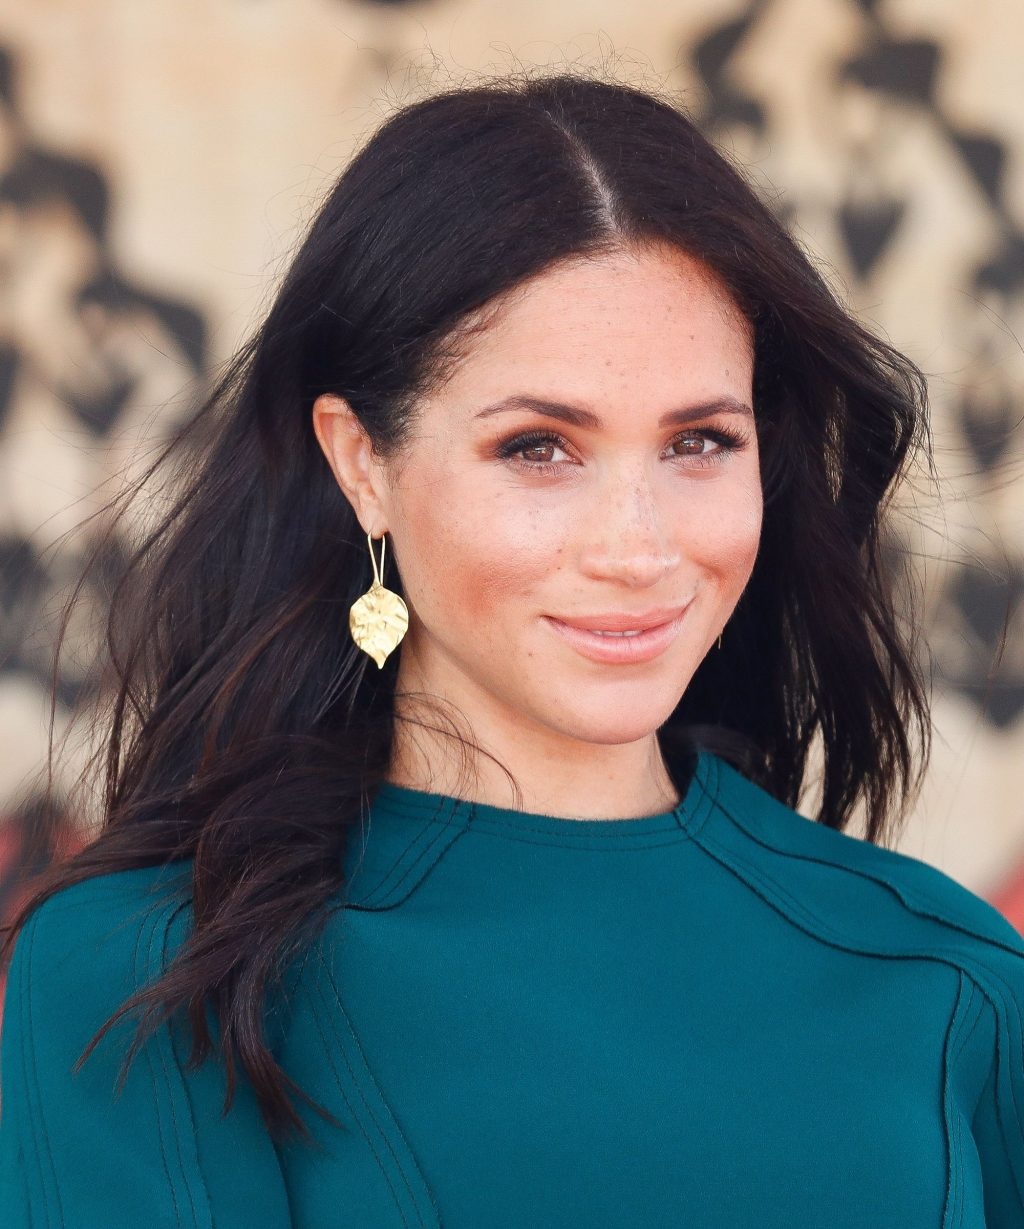 So She's the Secret Behind Meghan Markle's Glow